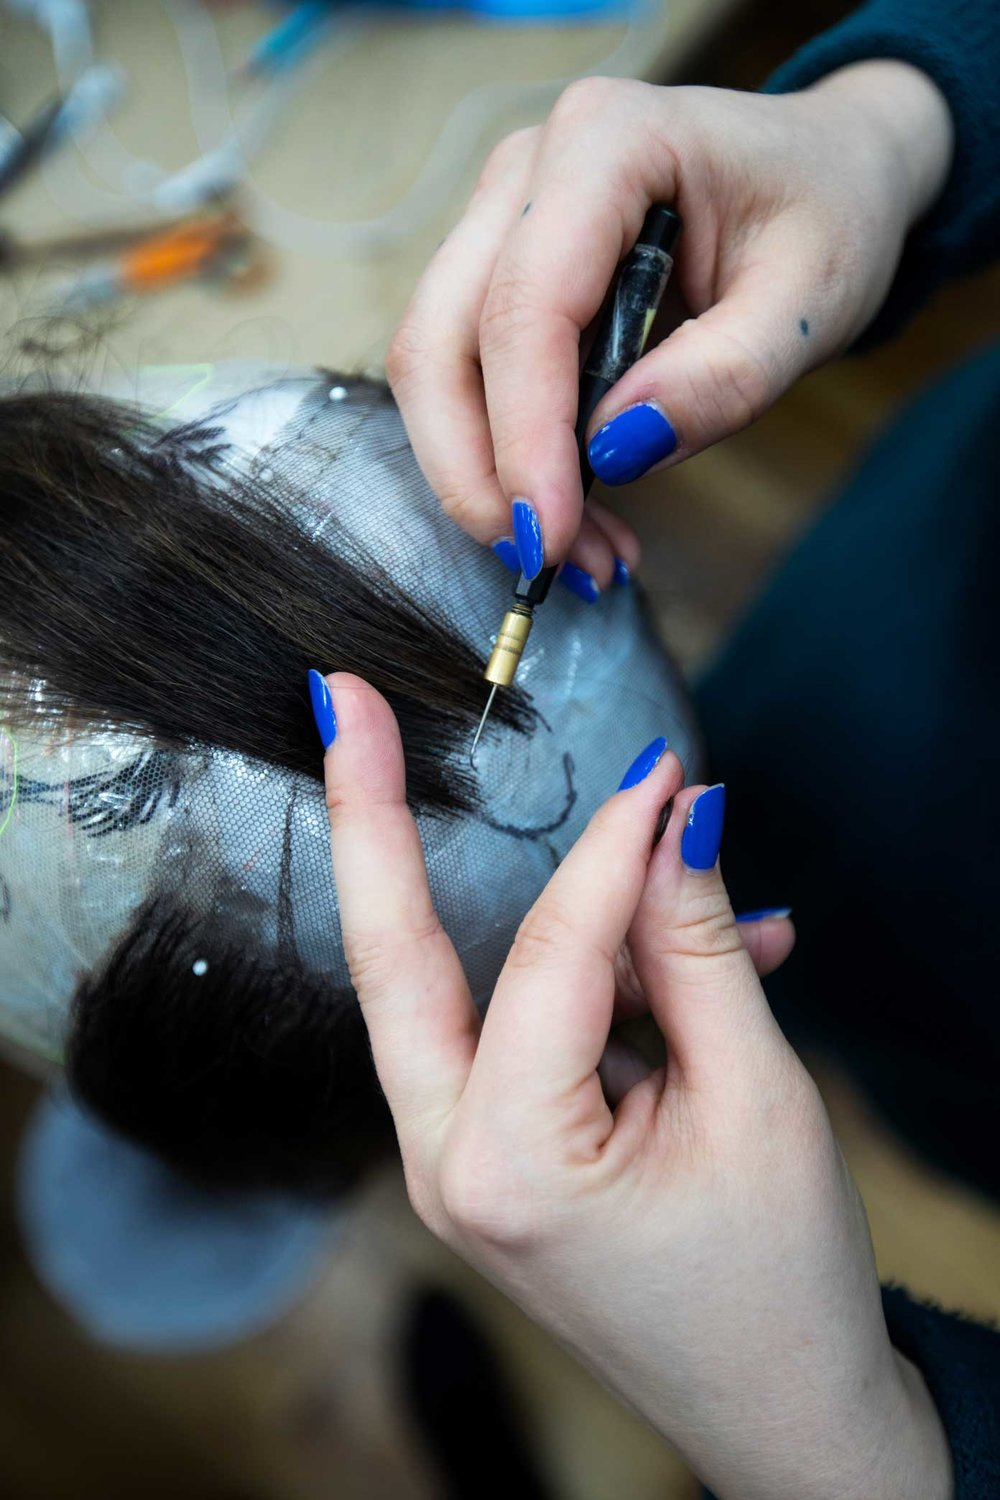 Chloe-nil Acerol works on a new wig at the Tom Watson Wig Design Studio in Manhattan. Tom Watson is the head of the wig and makeup department at the Metropolitan Opera.